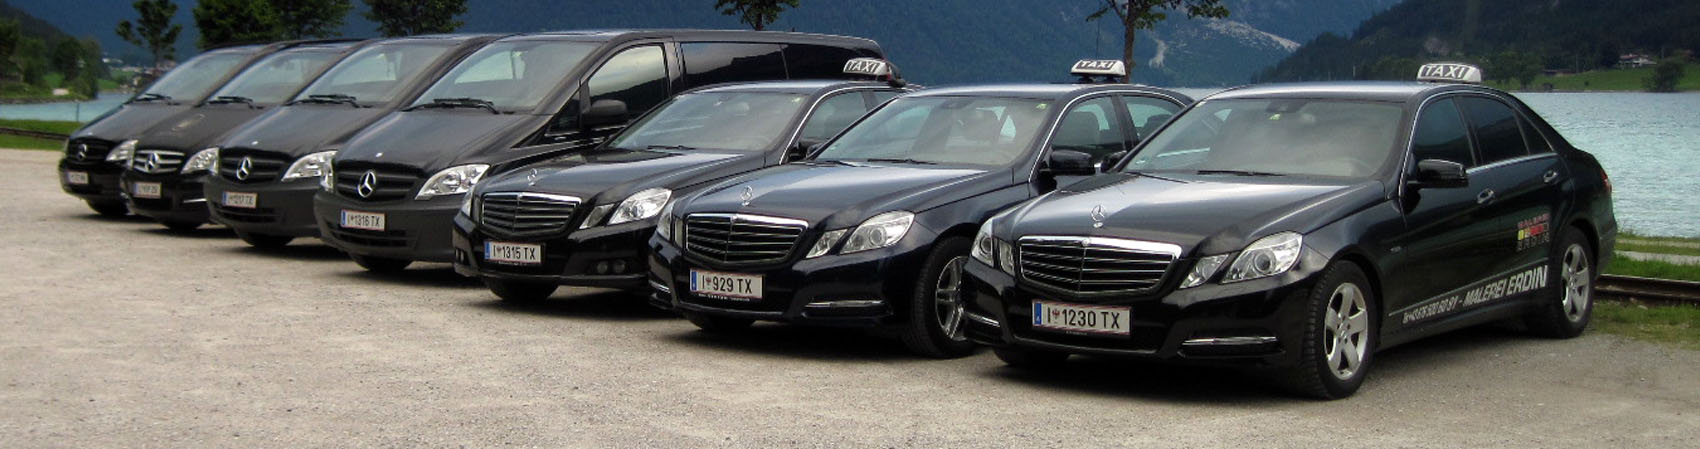 austria-airport-transfer